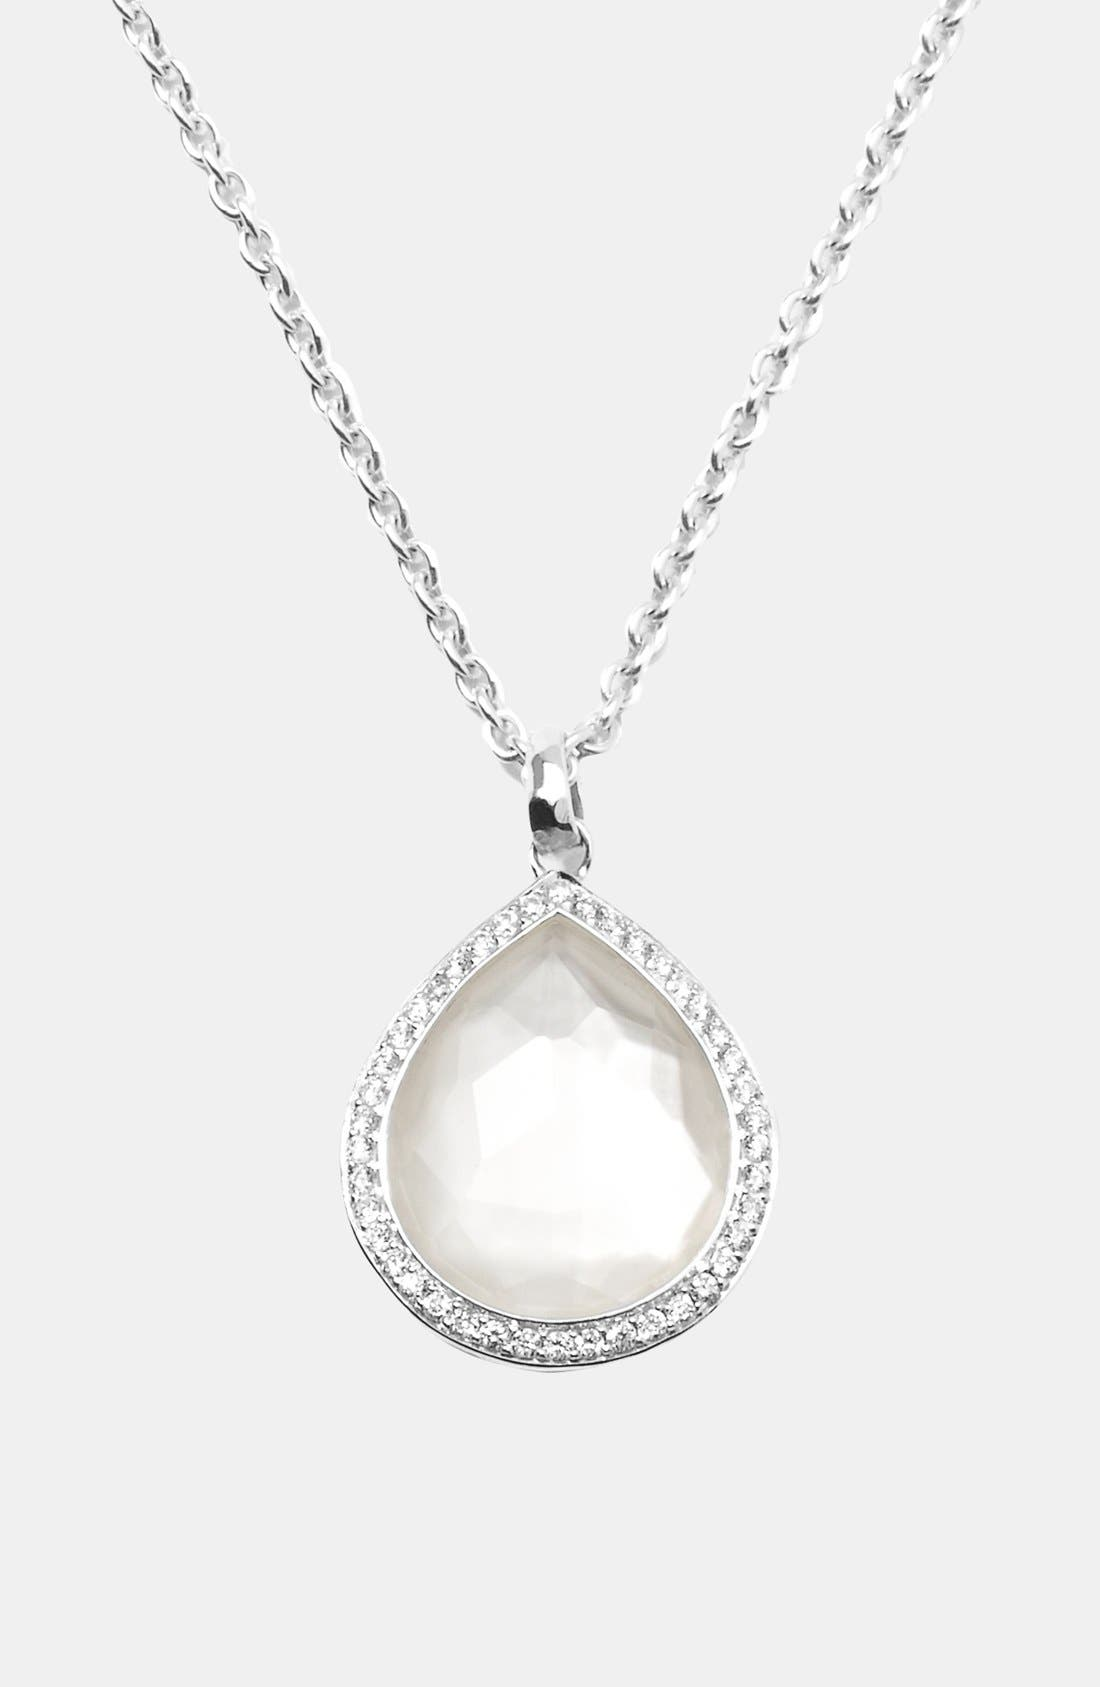 Alternate Image 1 Selected - Ippolita 'Stella' Small Teardrop Pendant Necklace